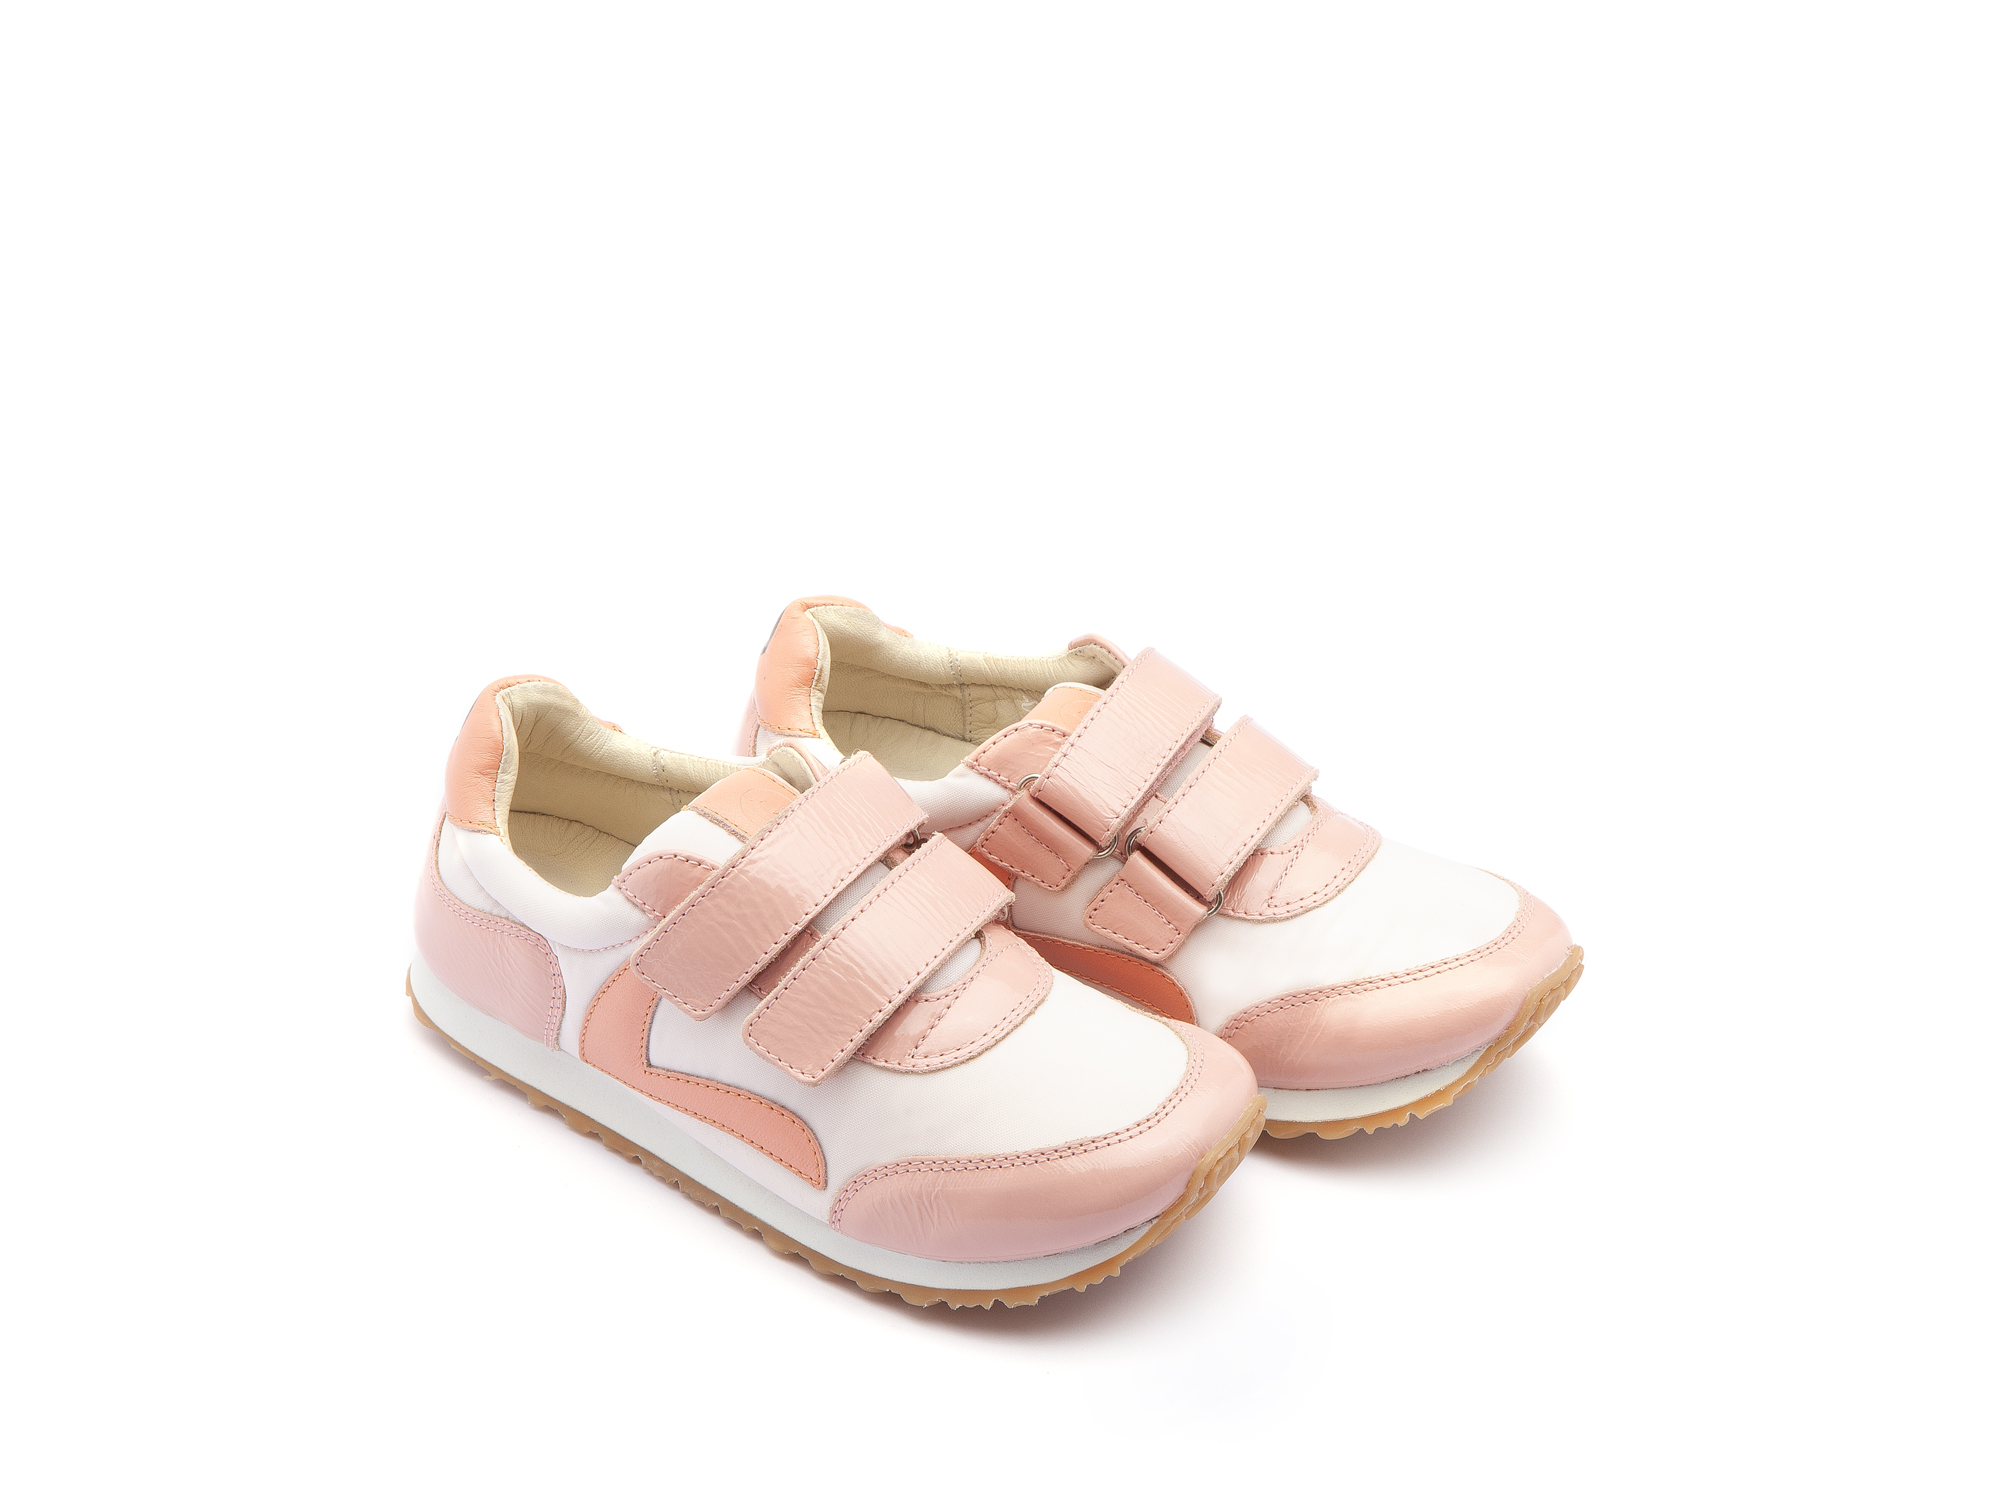 Tênis Jump Light Pink Nylon/ Patent Blush Junior 4 à 8 anos - 0